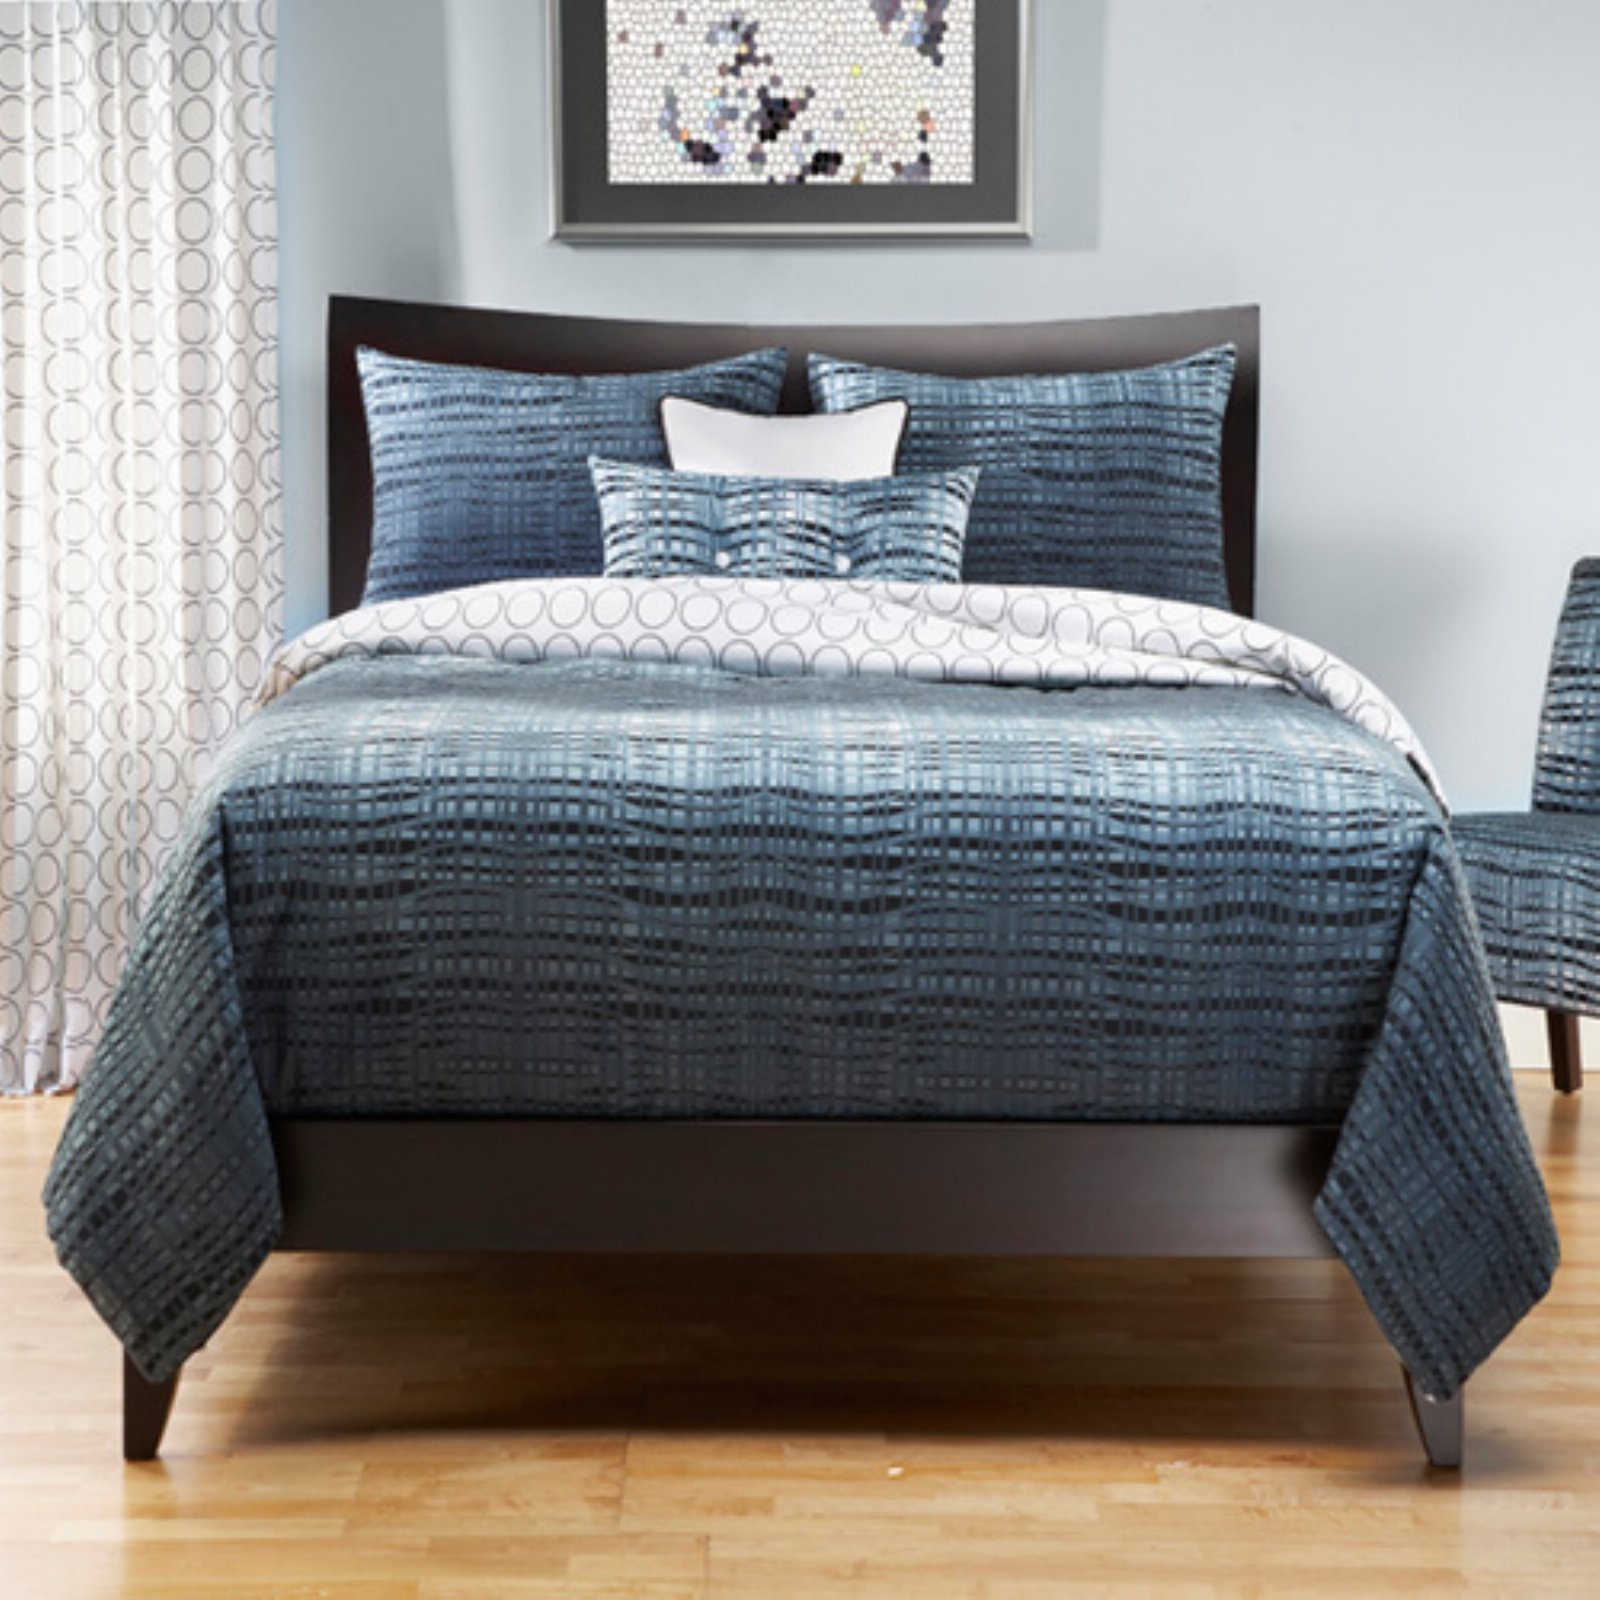 SIS Covers Interweave Duvet Set